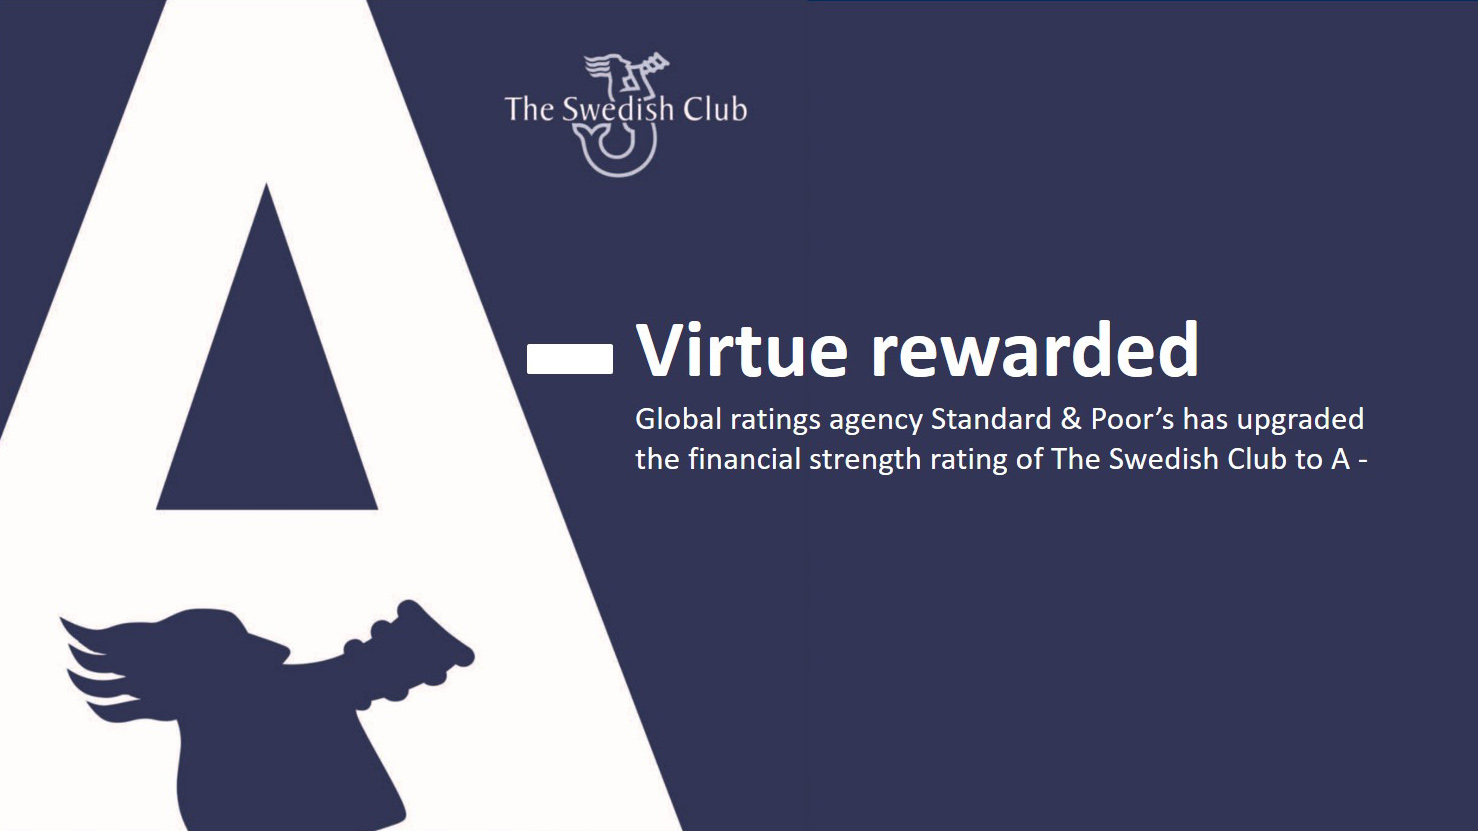 A- rating Virtue rewarded